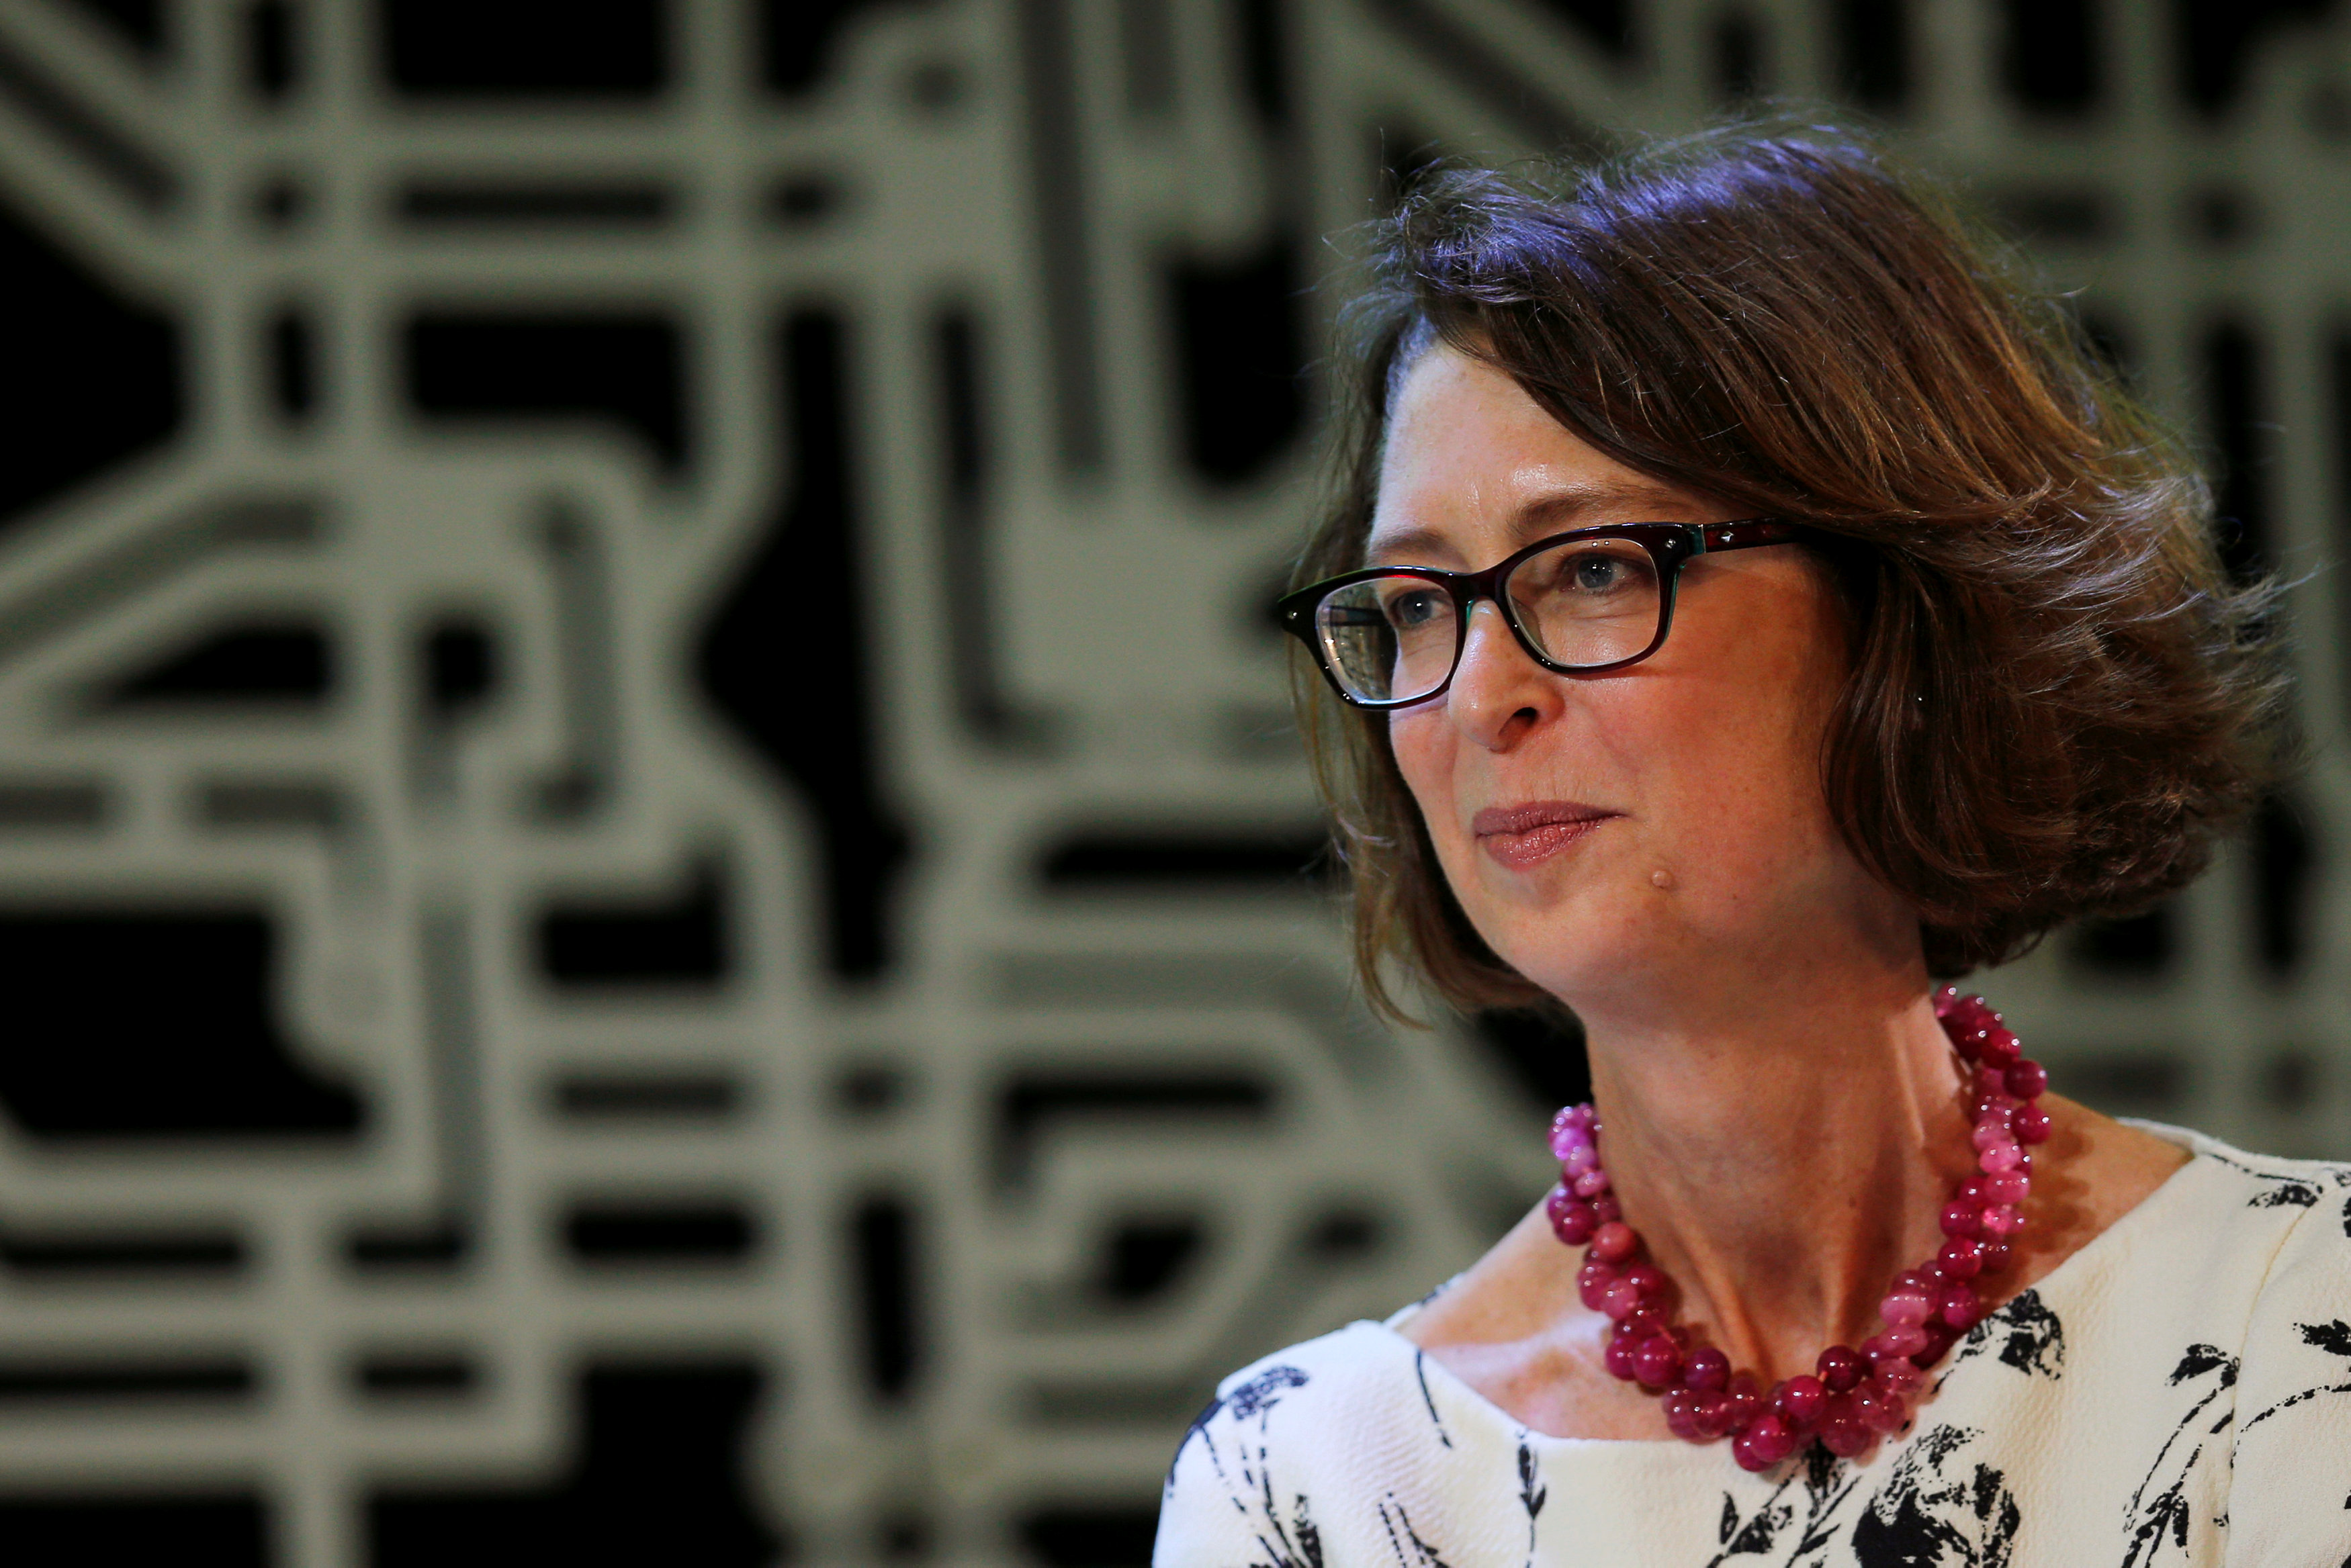 Fidelity Chairman and CEO Abigail Johnson interviews founder of Bloomberg L.P. and former New York City Mayor Michael Bloomberg about innovation at the Boston-based HubWeek in Boston